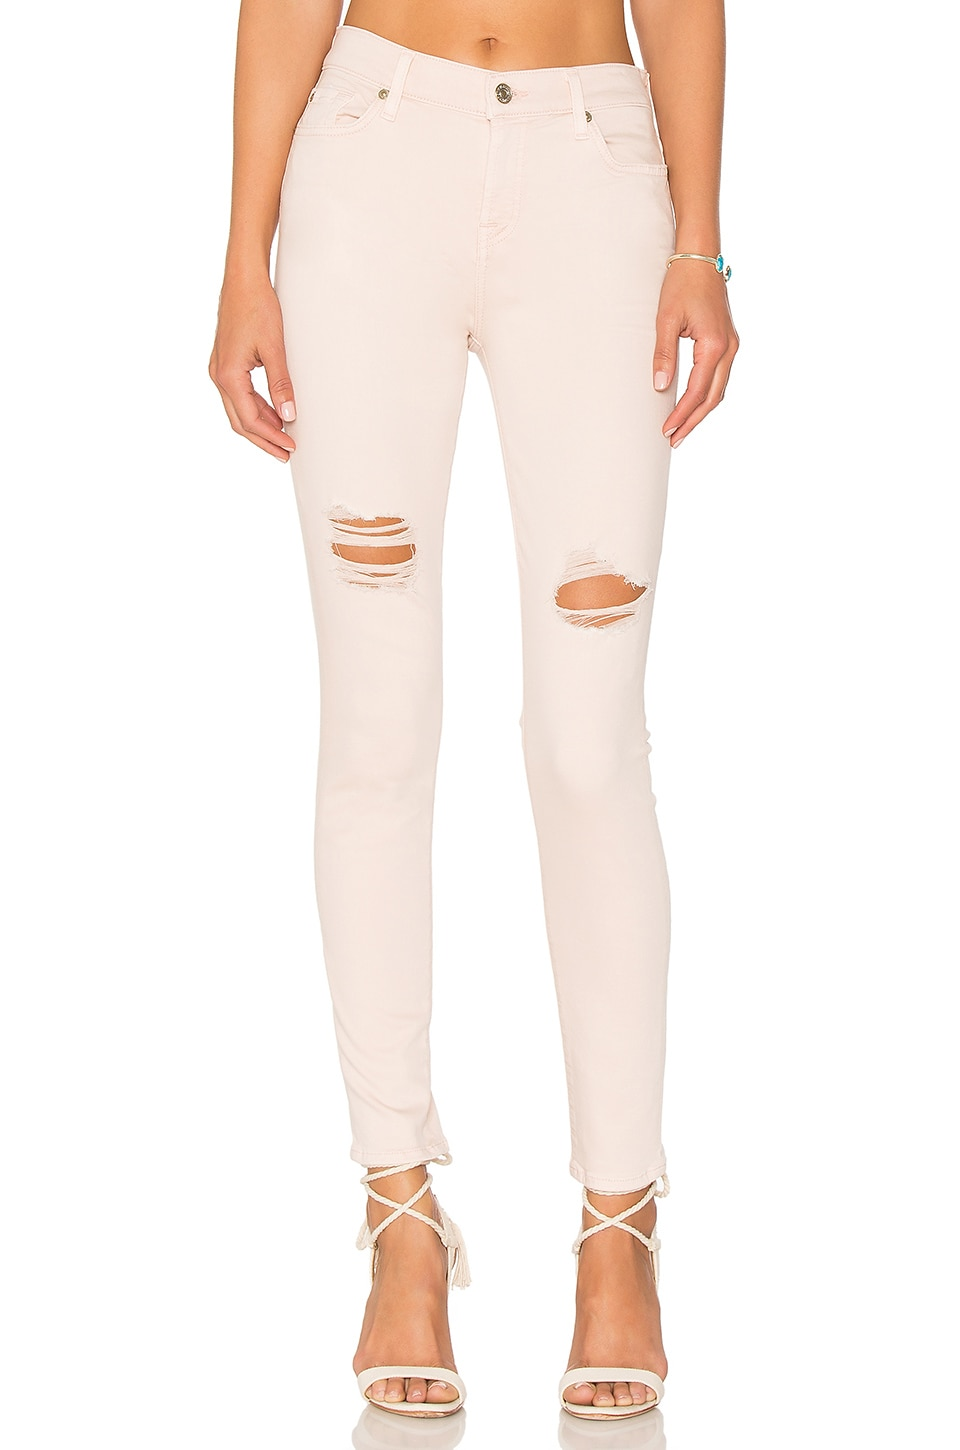 7 For All Mankind Ankle Skinny in Peony